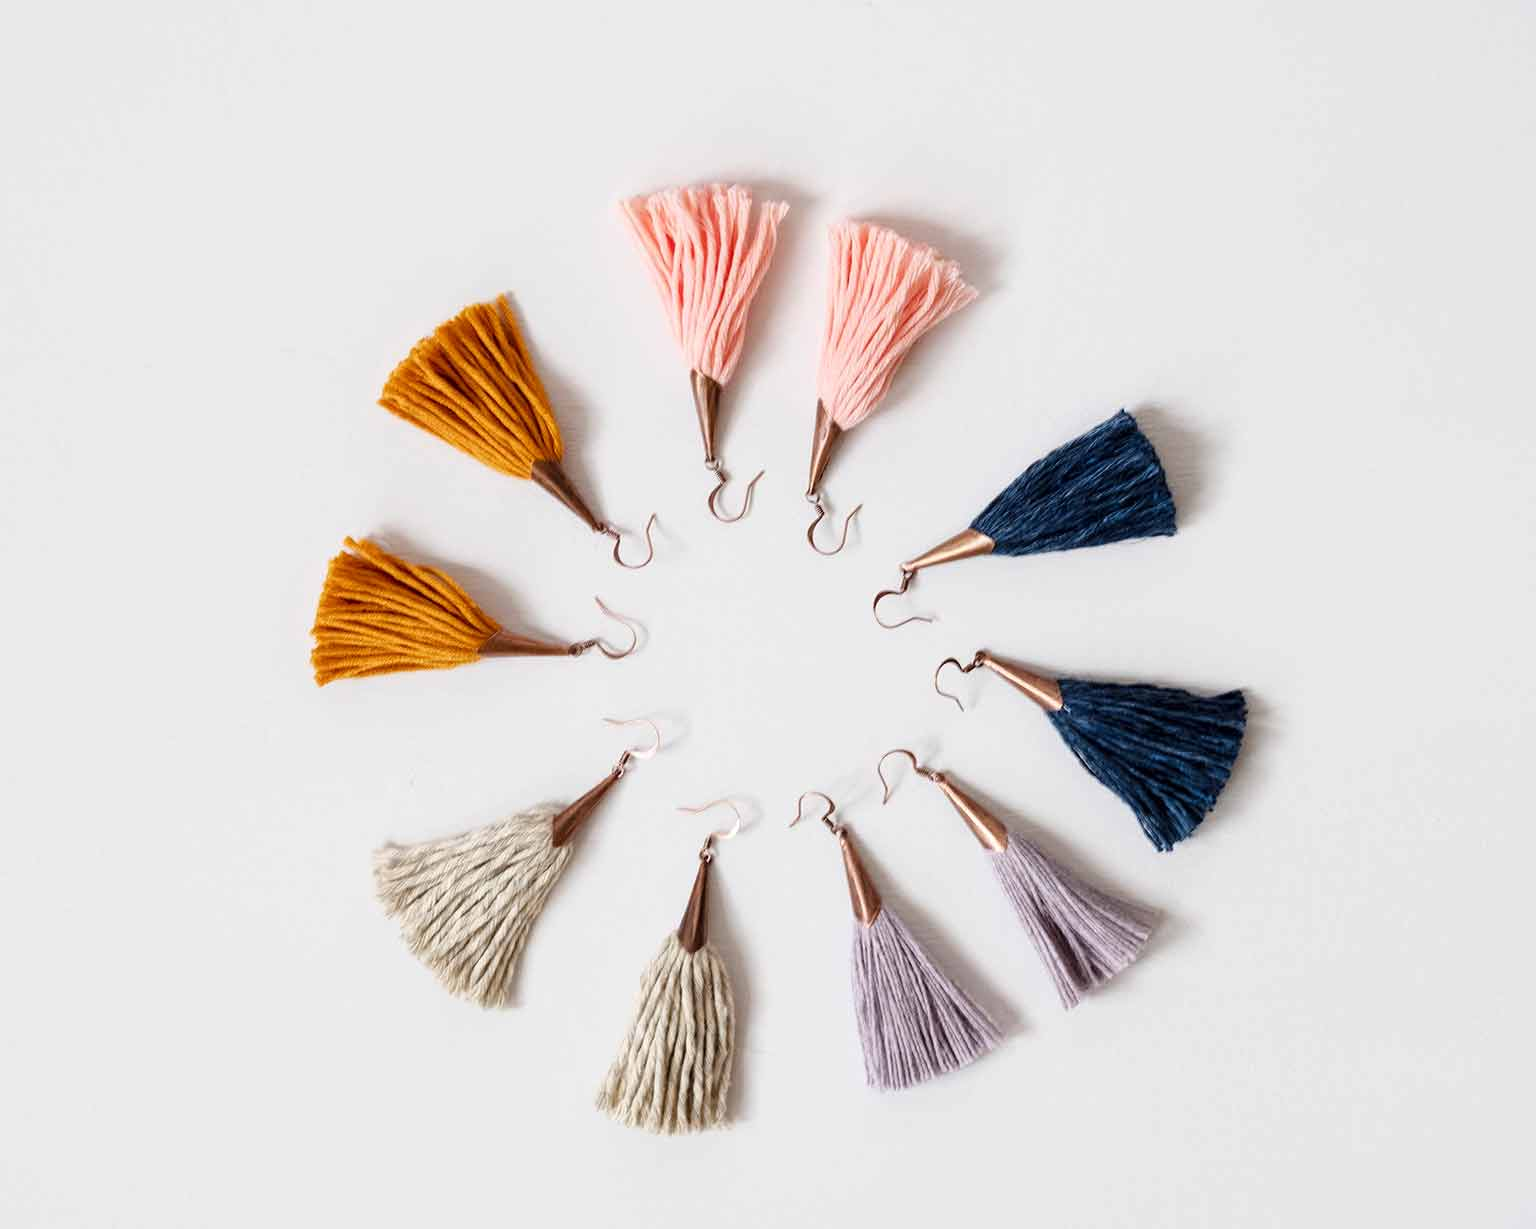 Yarn Earrings - Ethical, Sustainable Holiday Gift Guide - That Homebird Life Blog